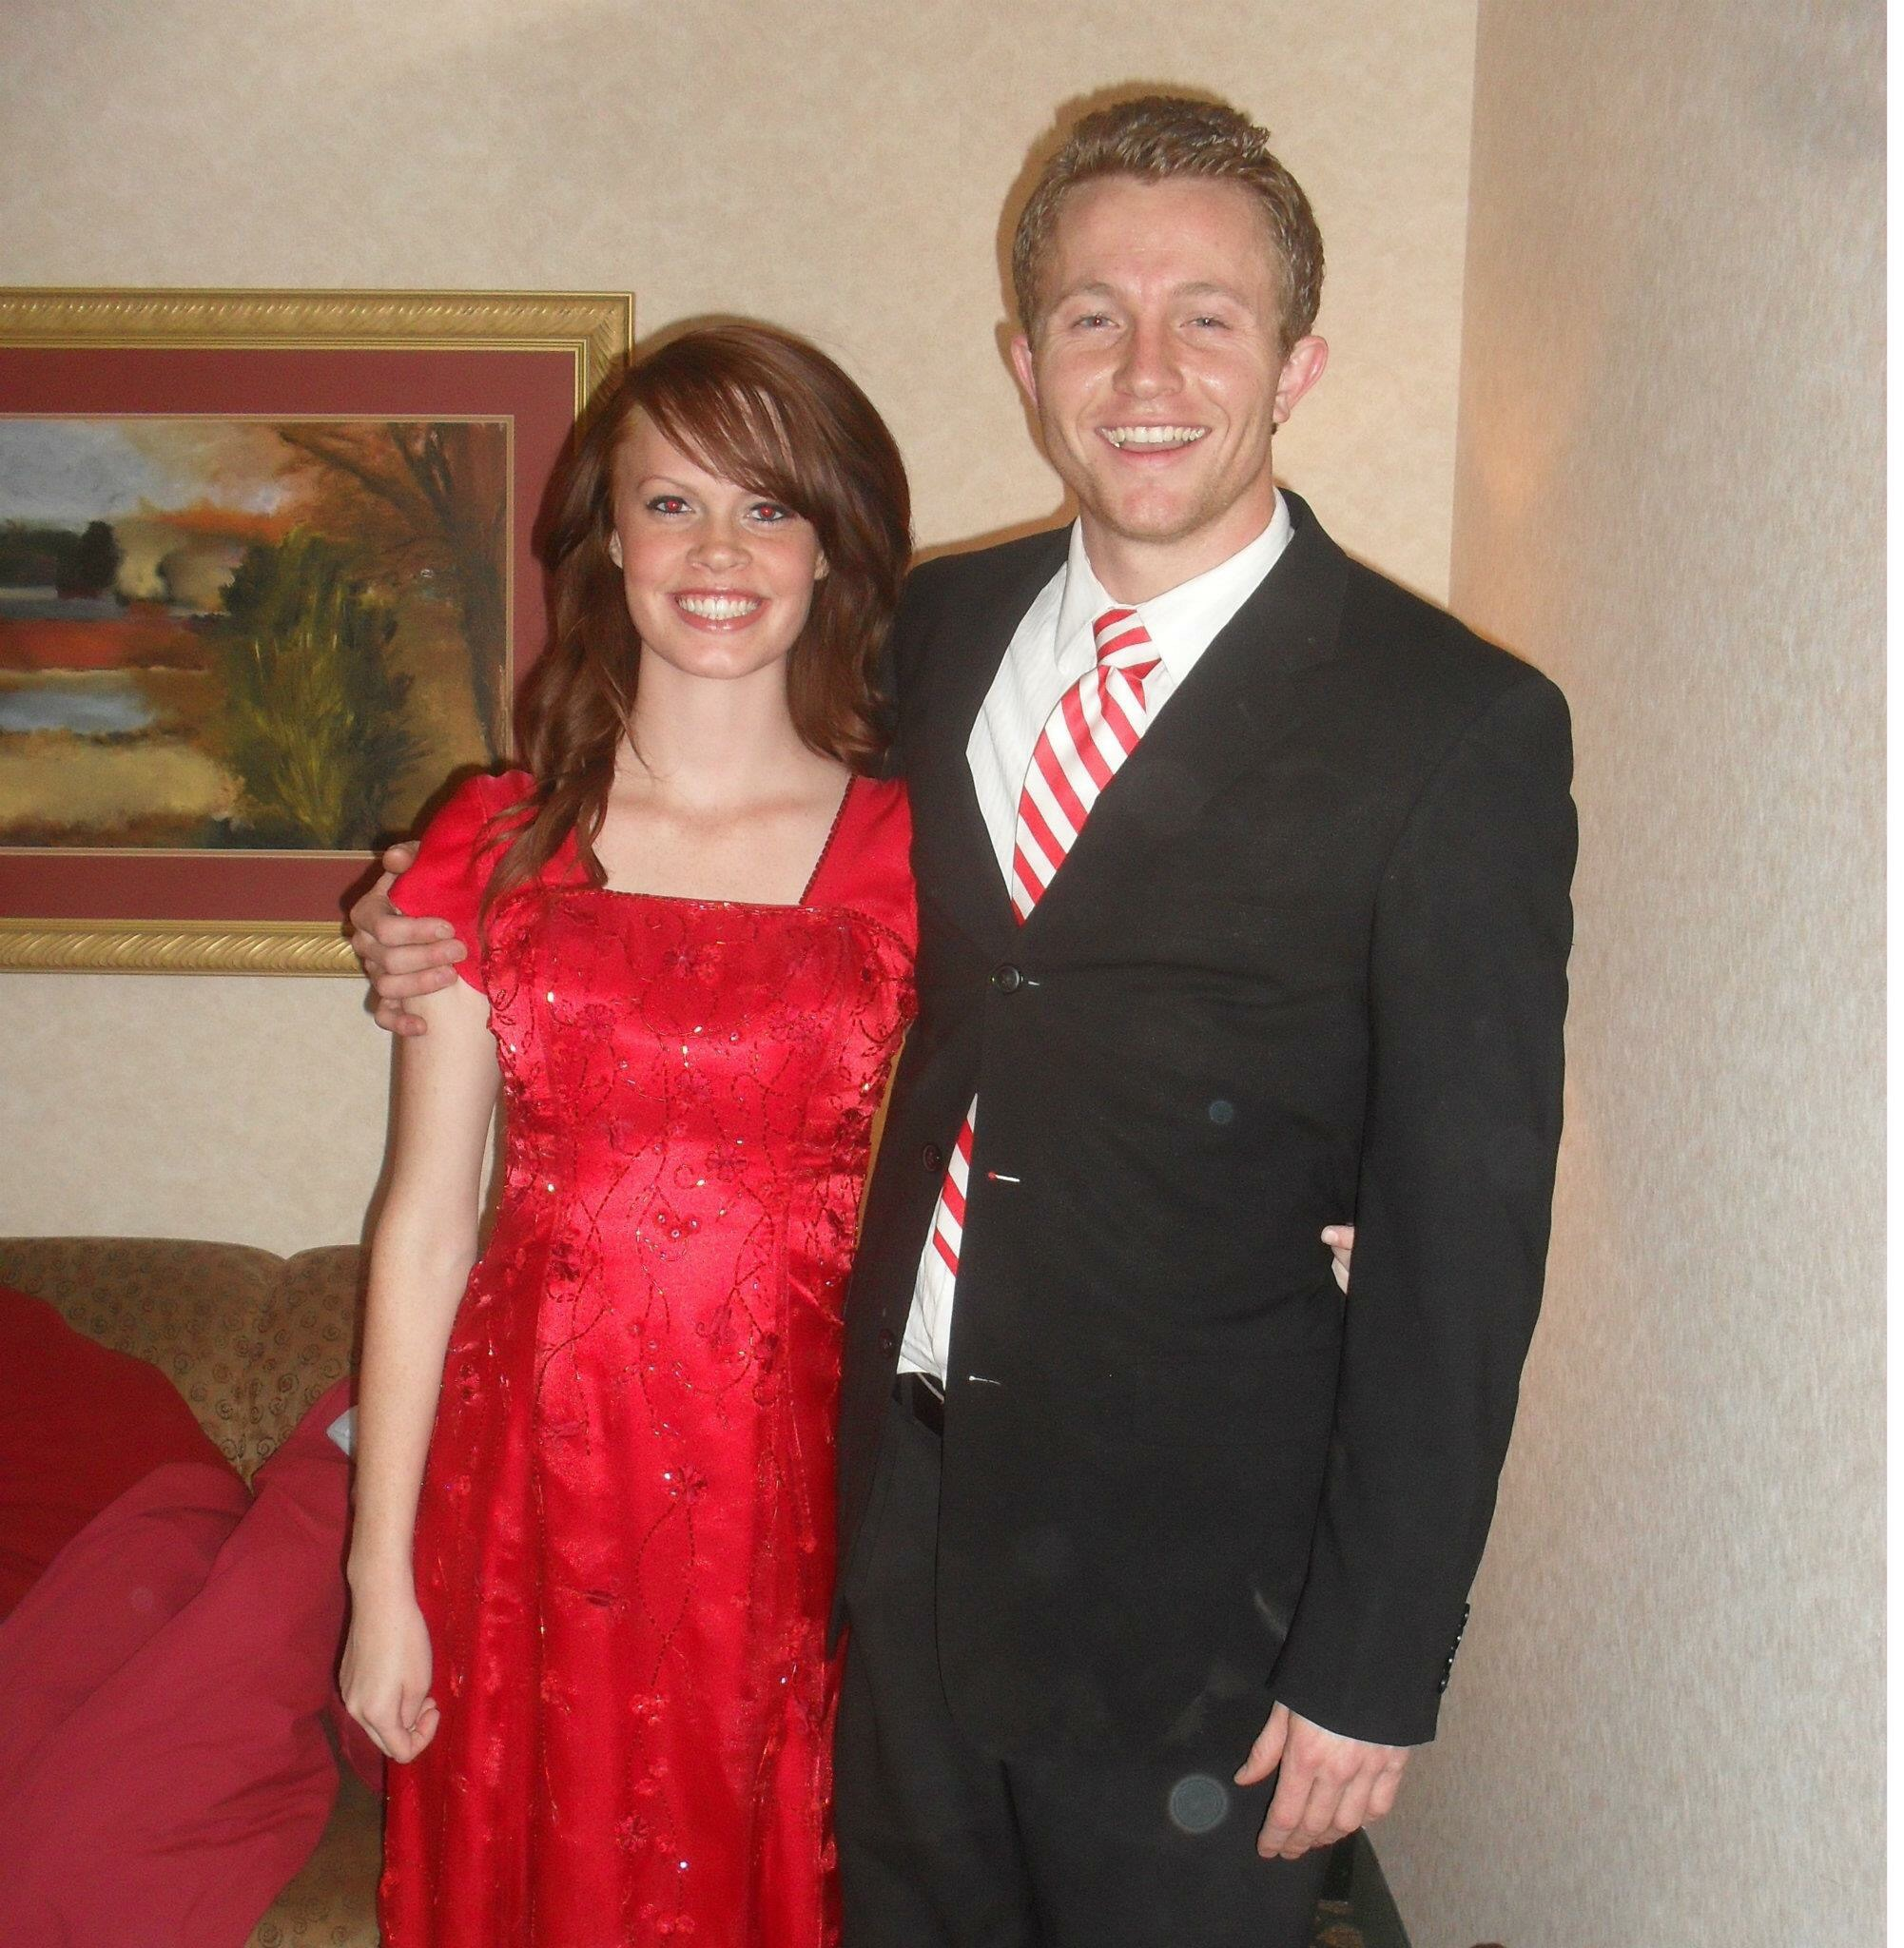 """For our 6 month anniversary Kyler took me to """"Prom"""" :)"""